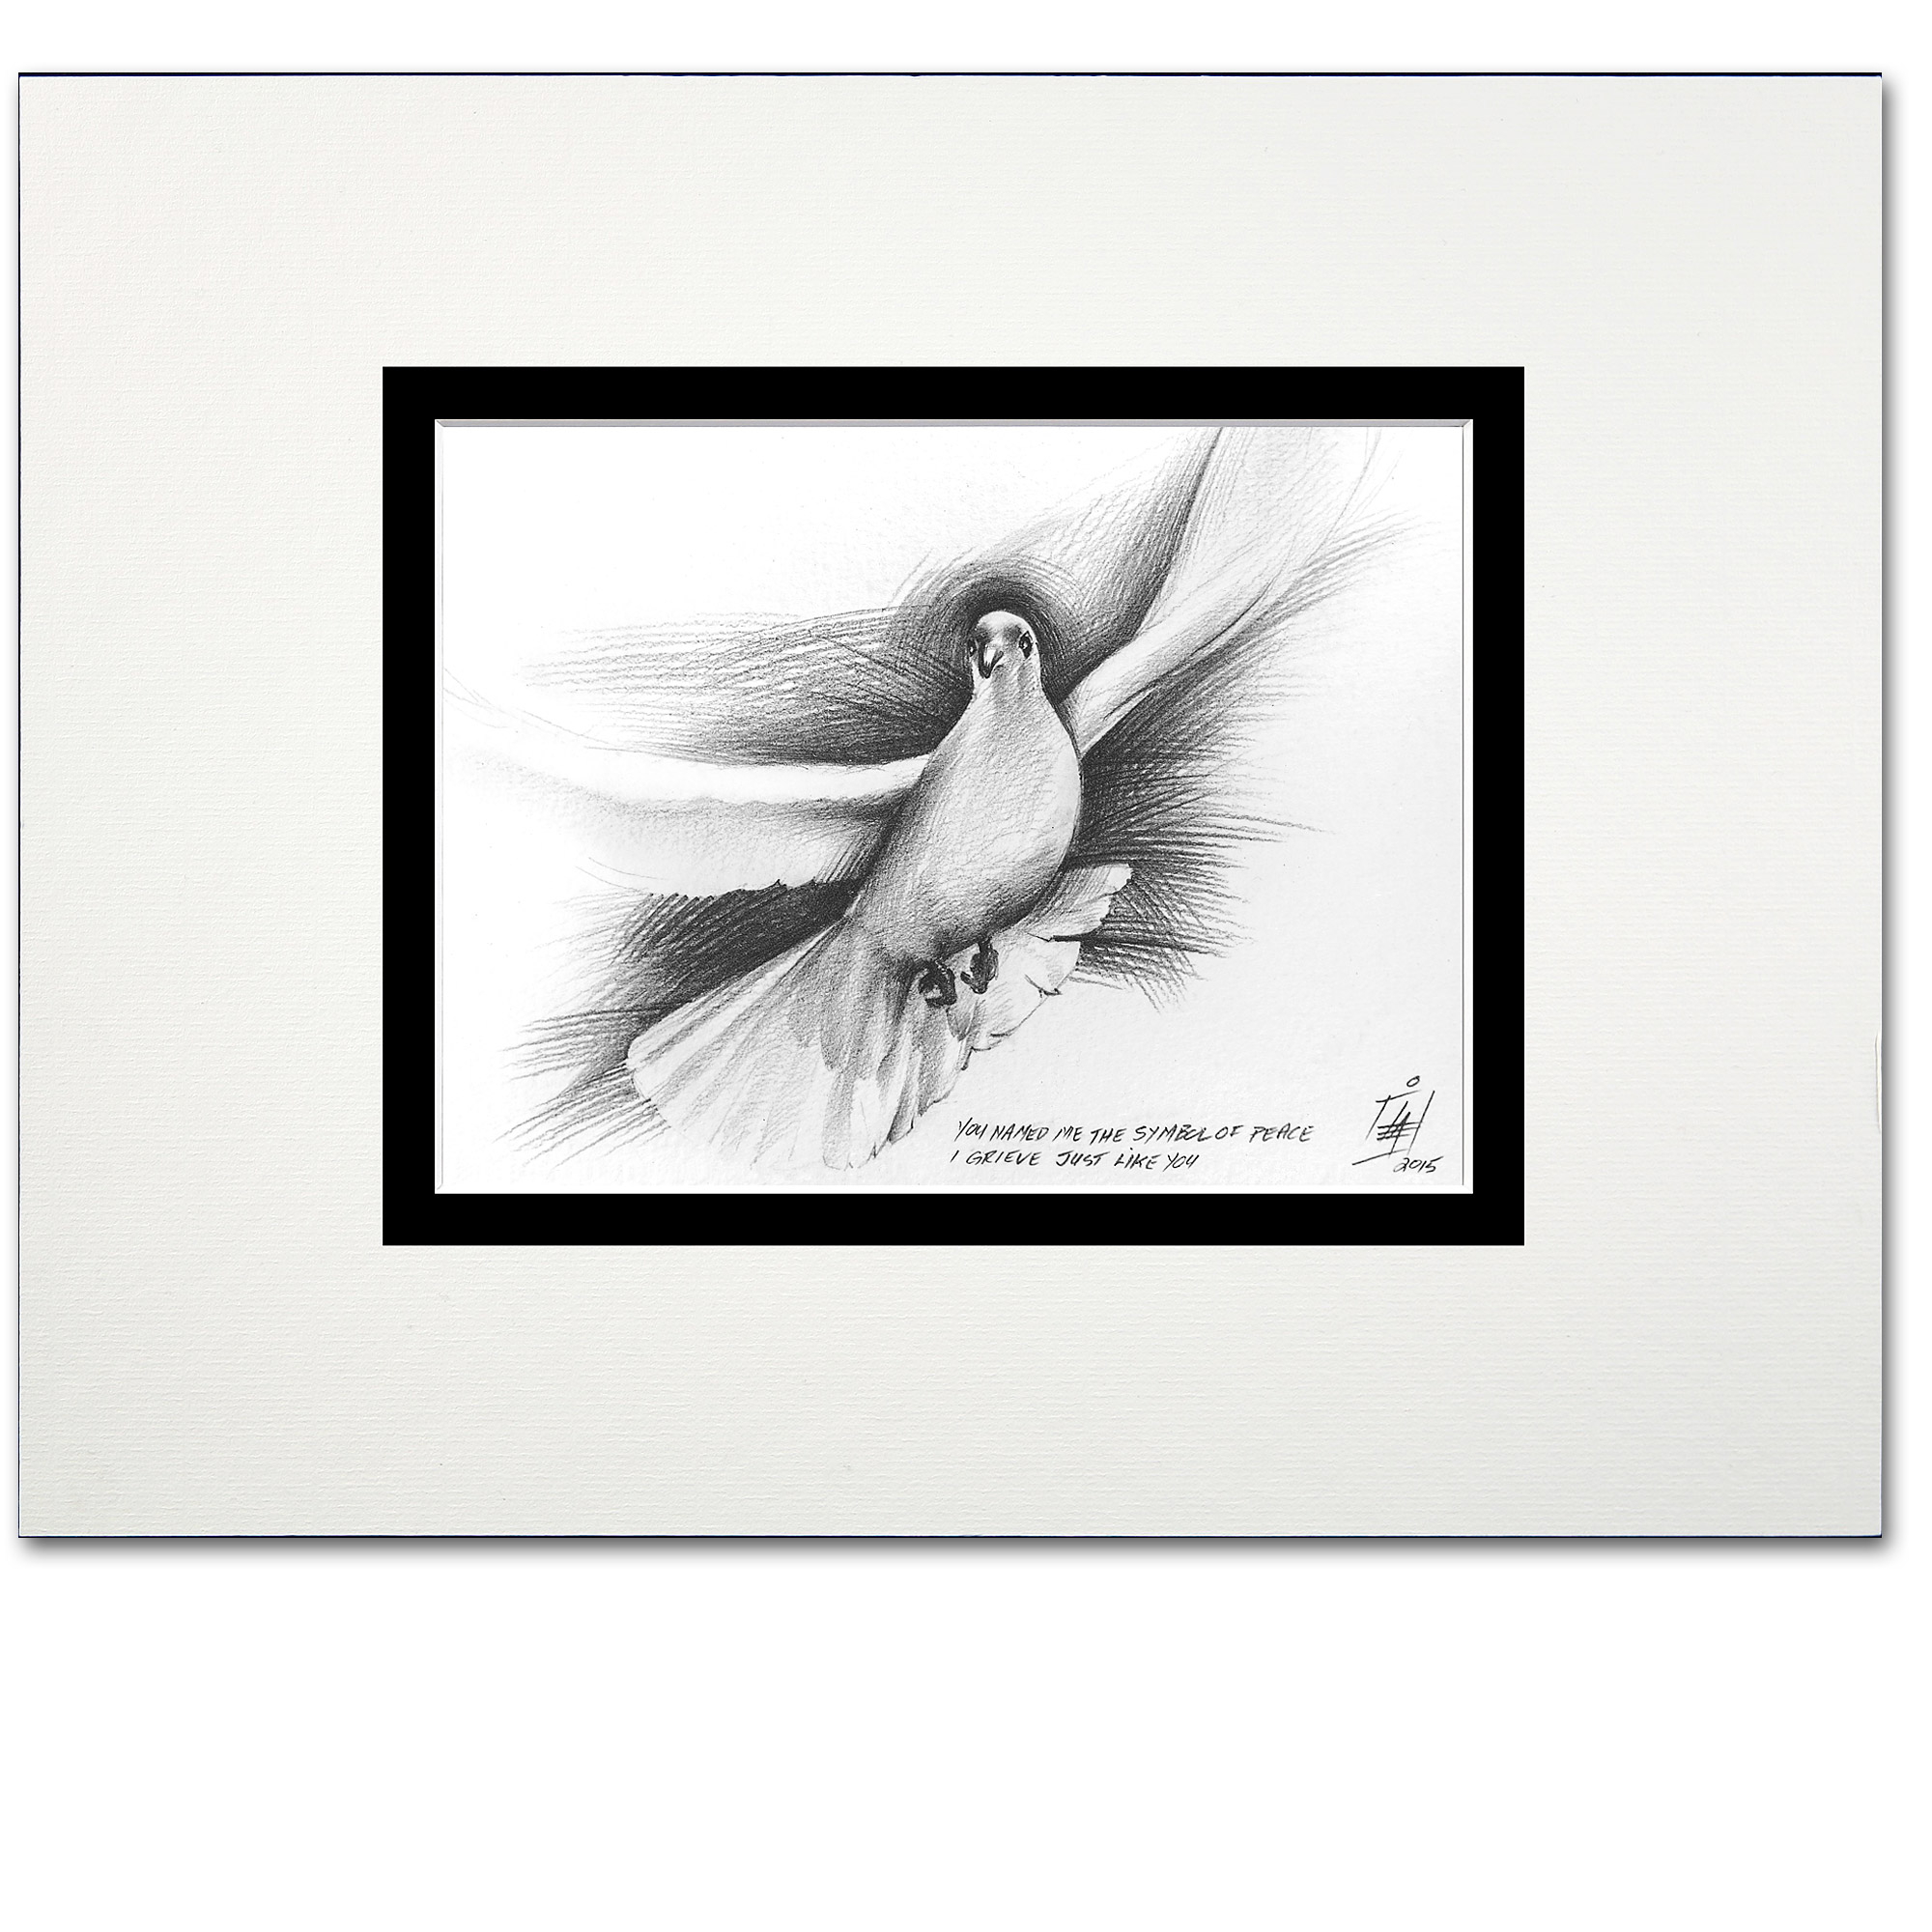 A pencil illustration of a dove in flight, art gallery display.